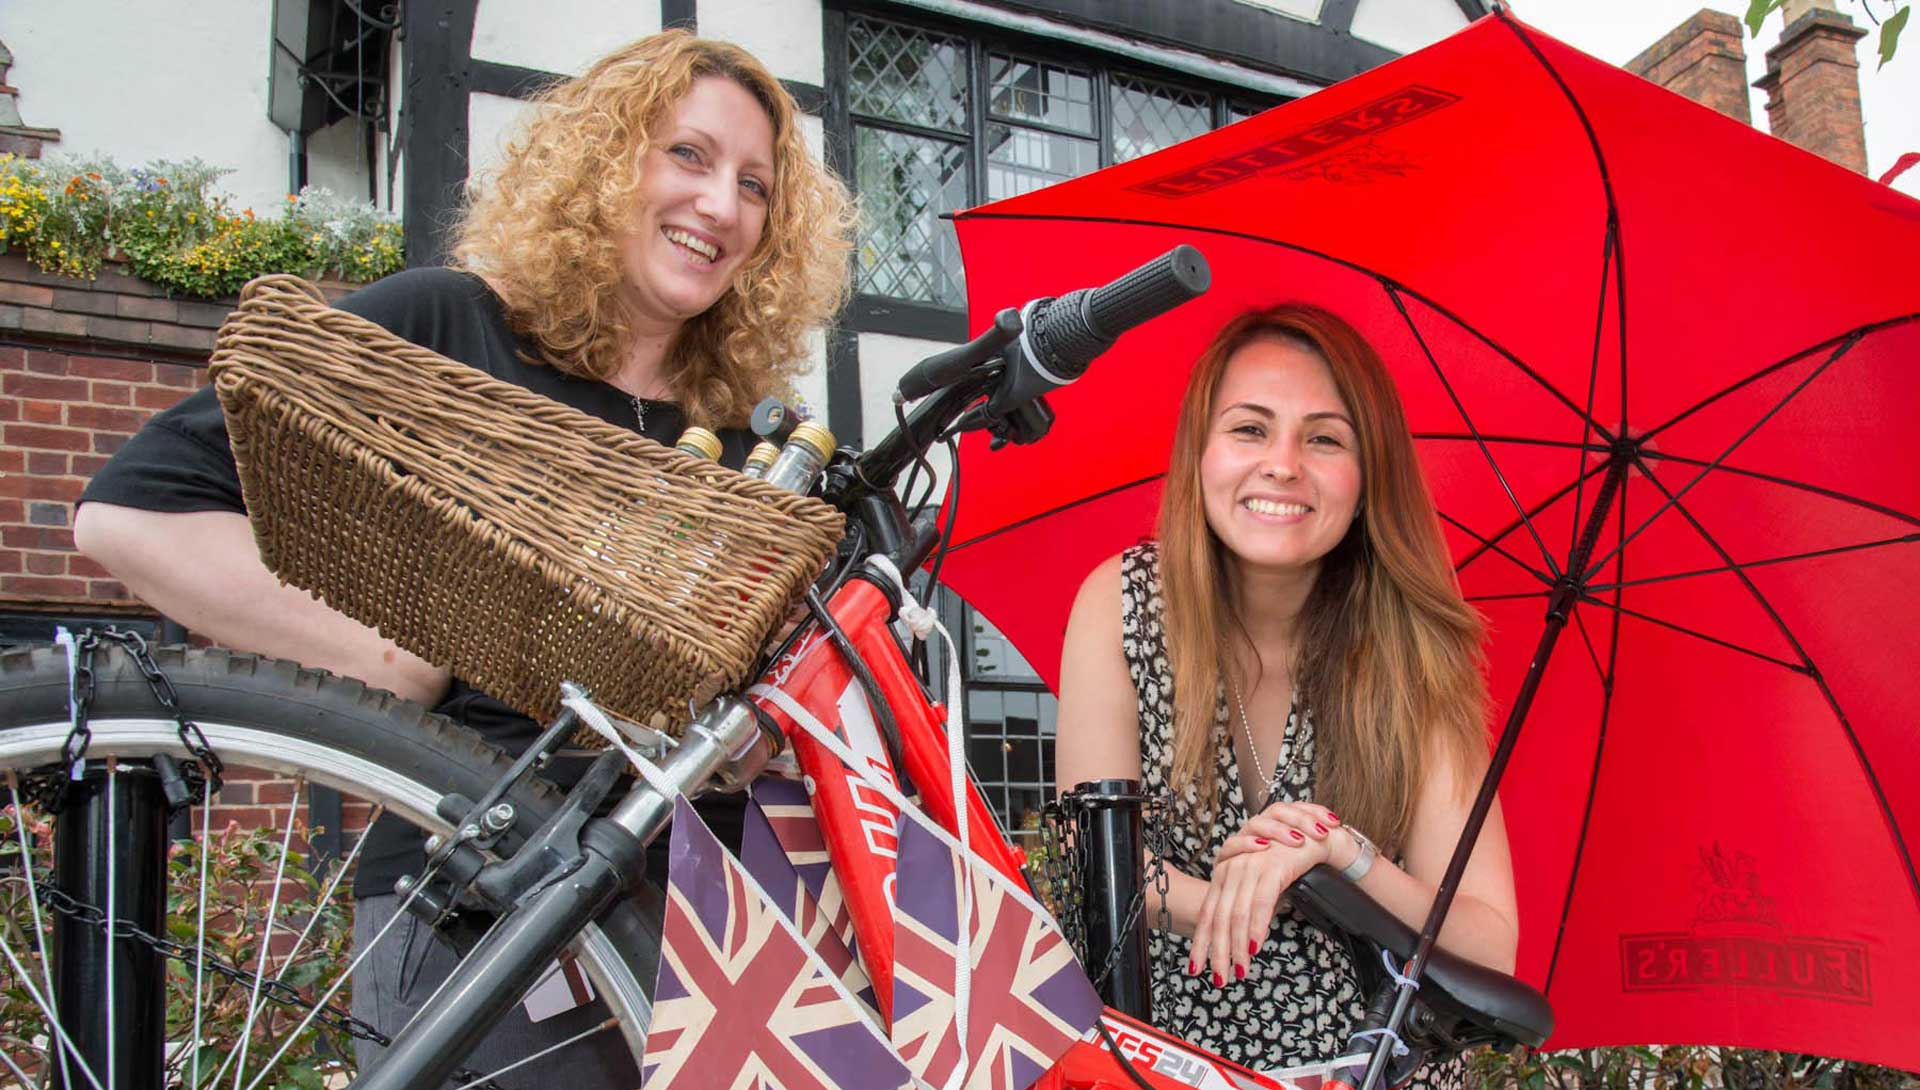 Stratford means business as it gets into gear to welcome the Aviva Women's Tour